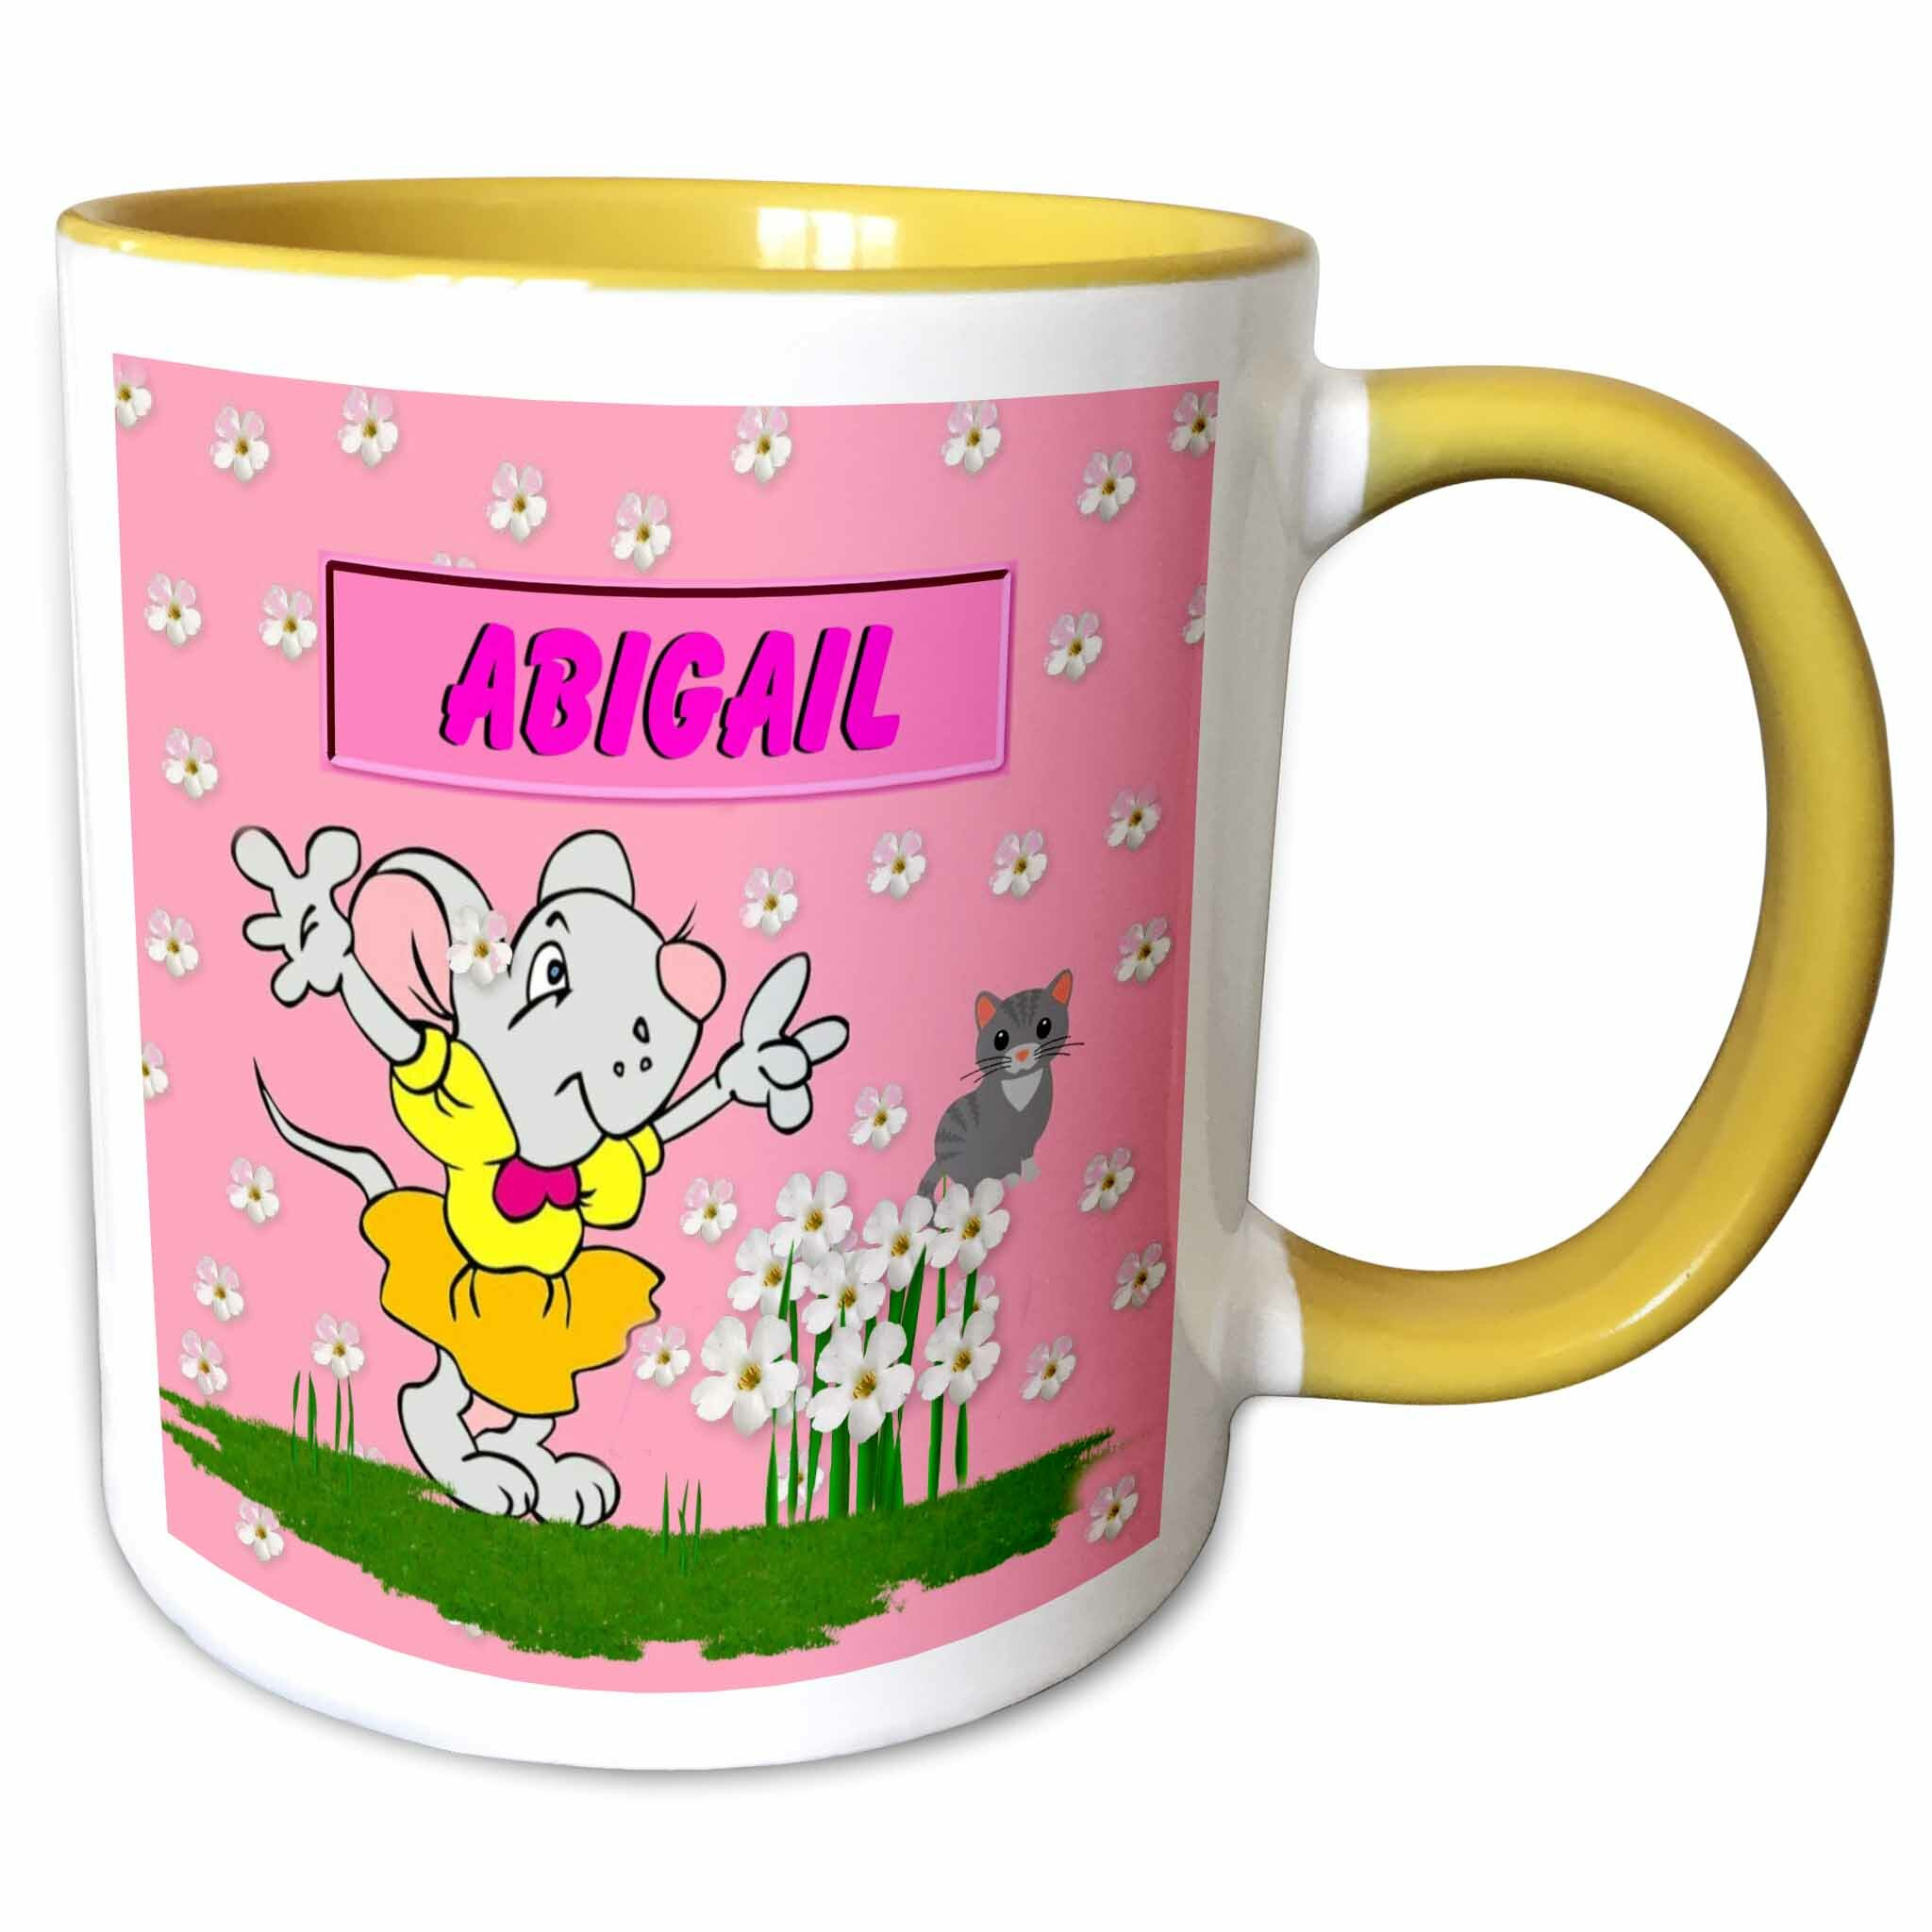 Symple Stuff Kiester Abigail Decorative Name Specific Childrens Art Coffee Mug Wayfair